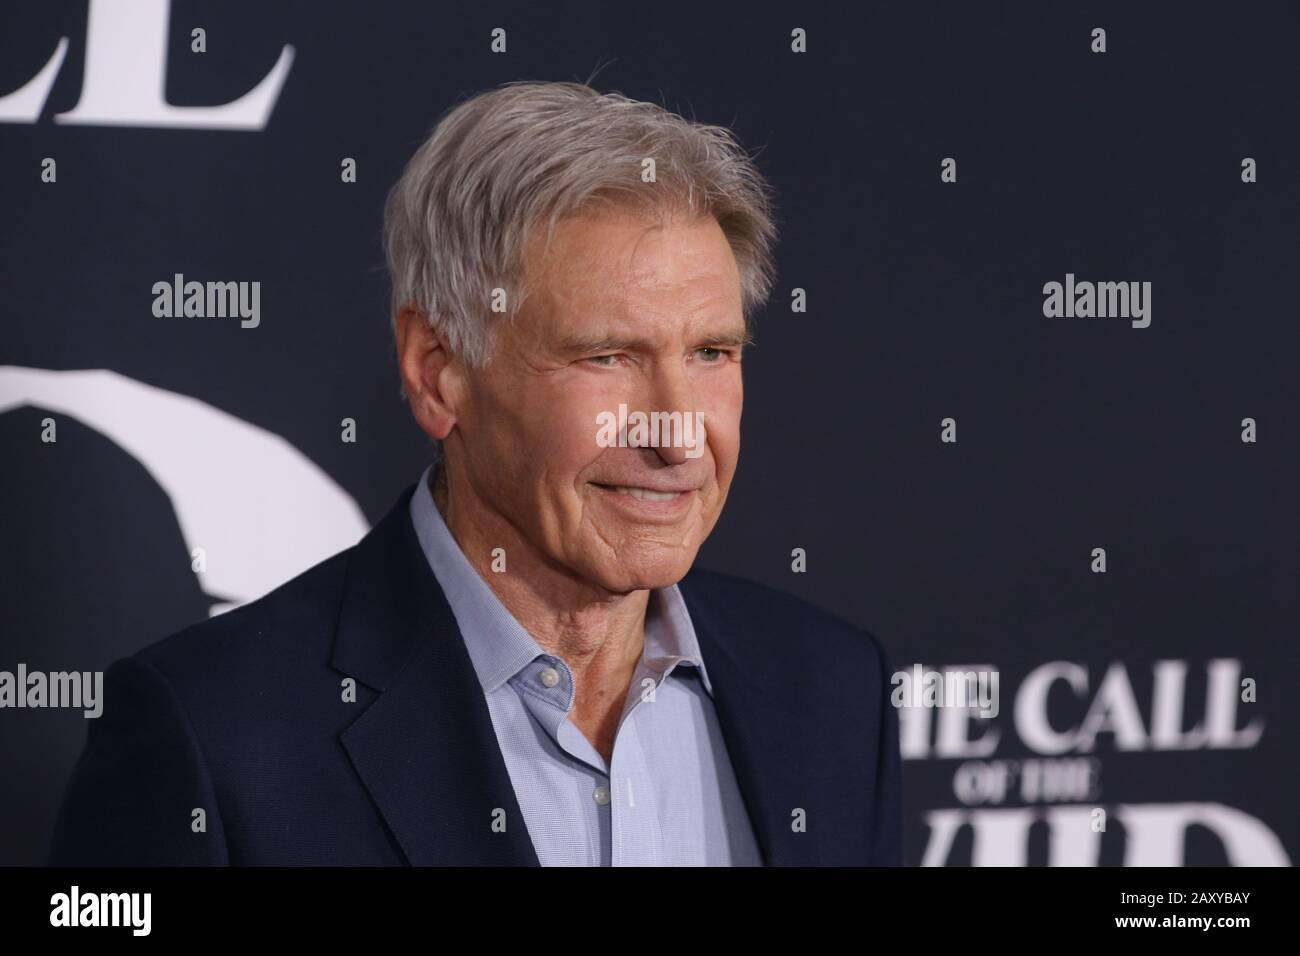 "Los Angeles, USA. 13th Feb, 2020. Harrison Ford at ""The Call Of The Wild"" World Premiere held at El Capitan Theatre in Los Angeles, CA, February 13, 2020. Photo Credit: Joseph Martinez/PictureLux Credit: PictureLux/The Hollywood Archive/Alamy Live News Stock Photo"